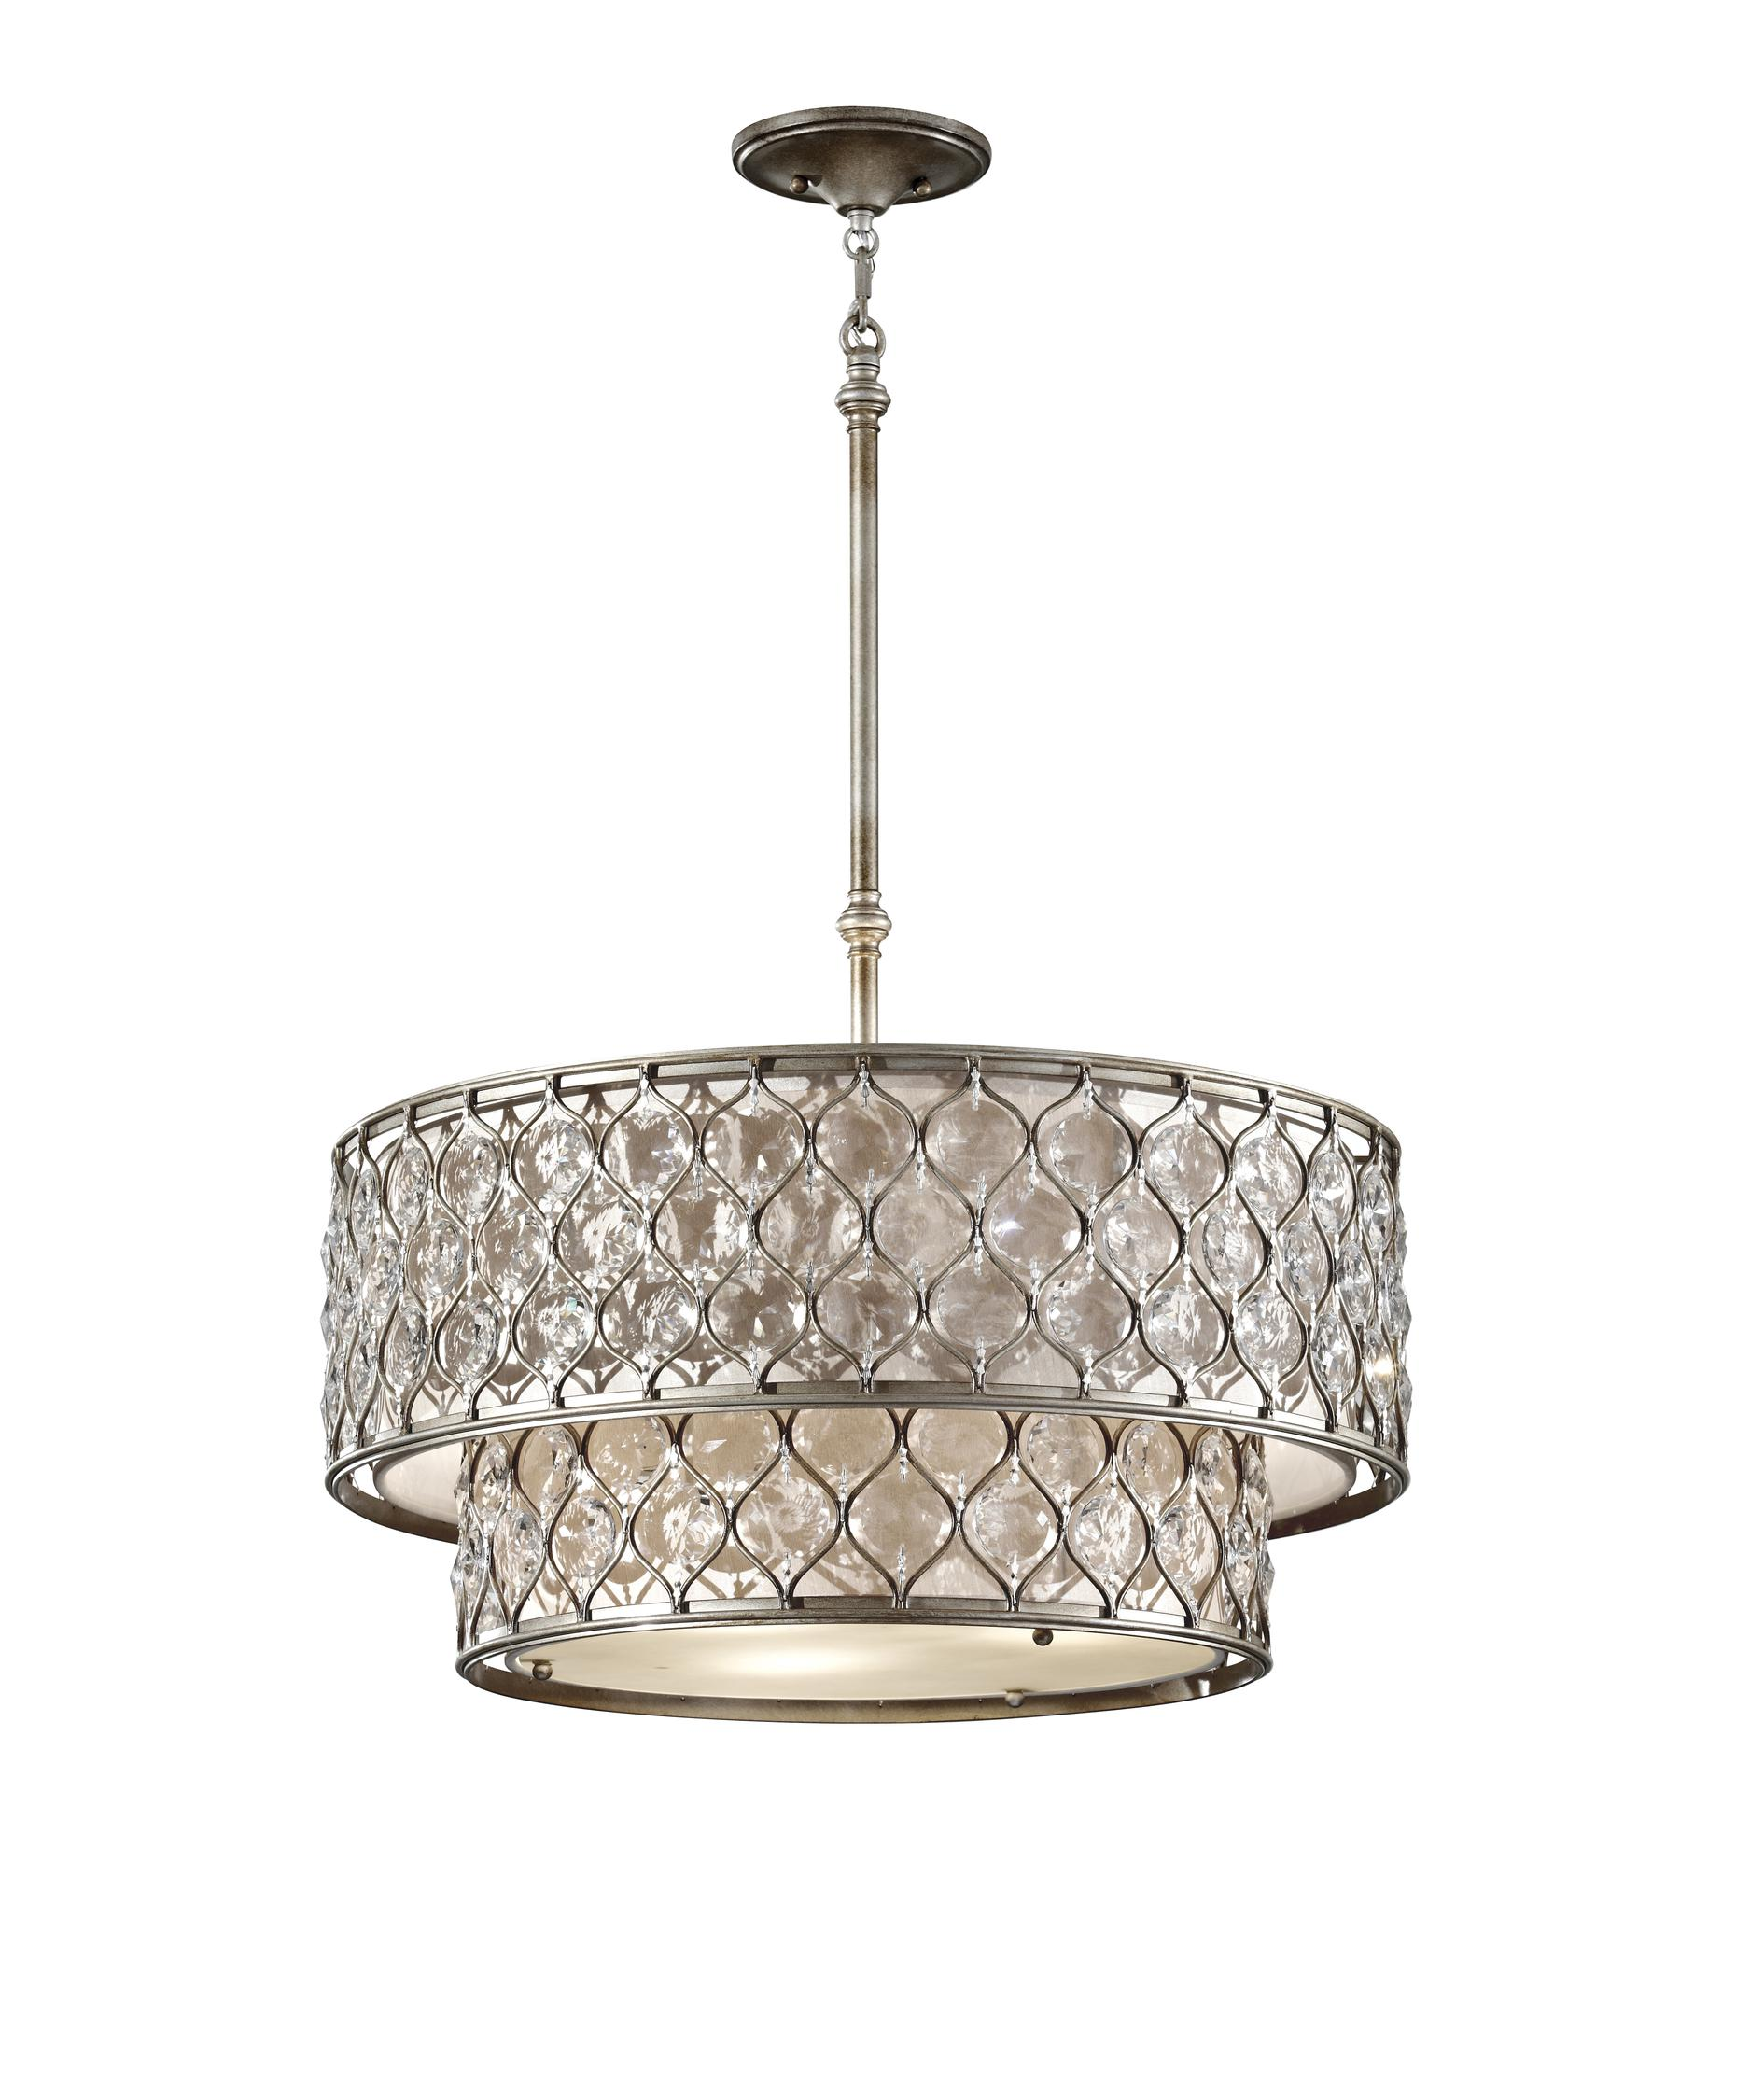 Murray Feiss F2707 6 Lucia 25 Inch Large Pendant